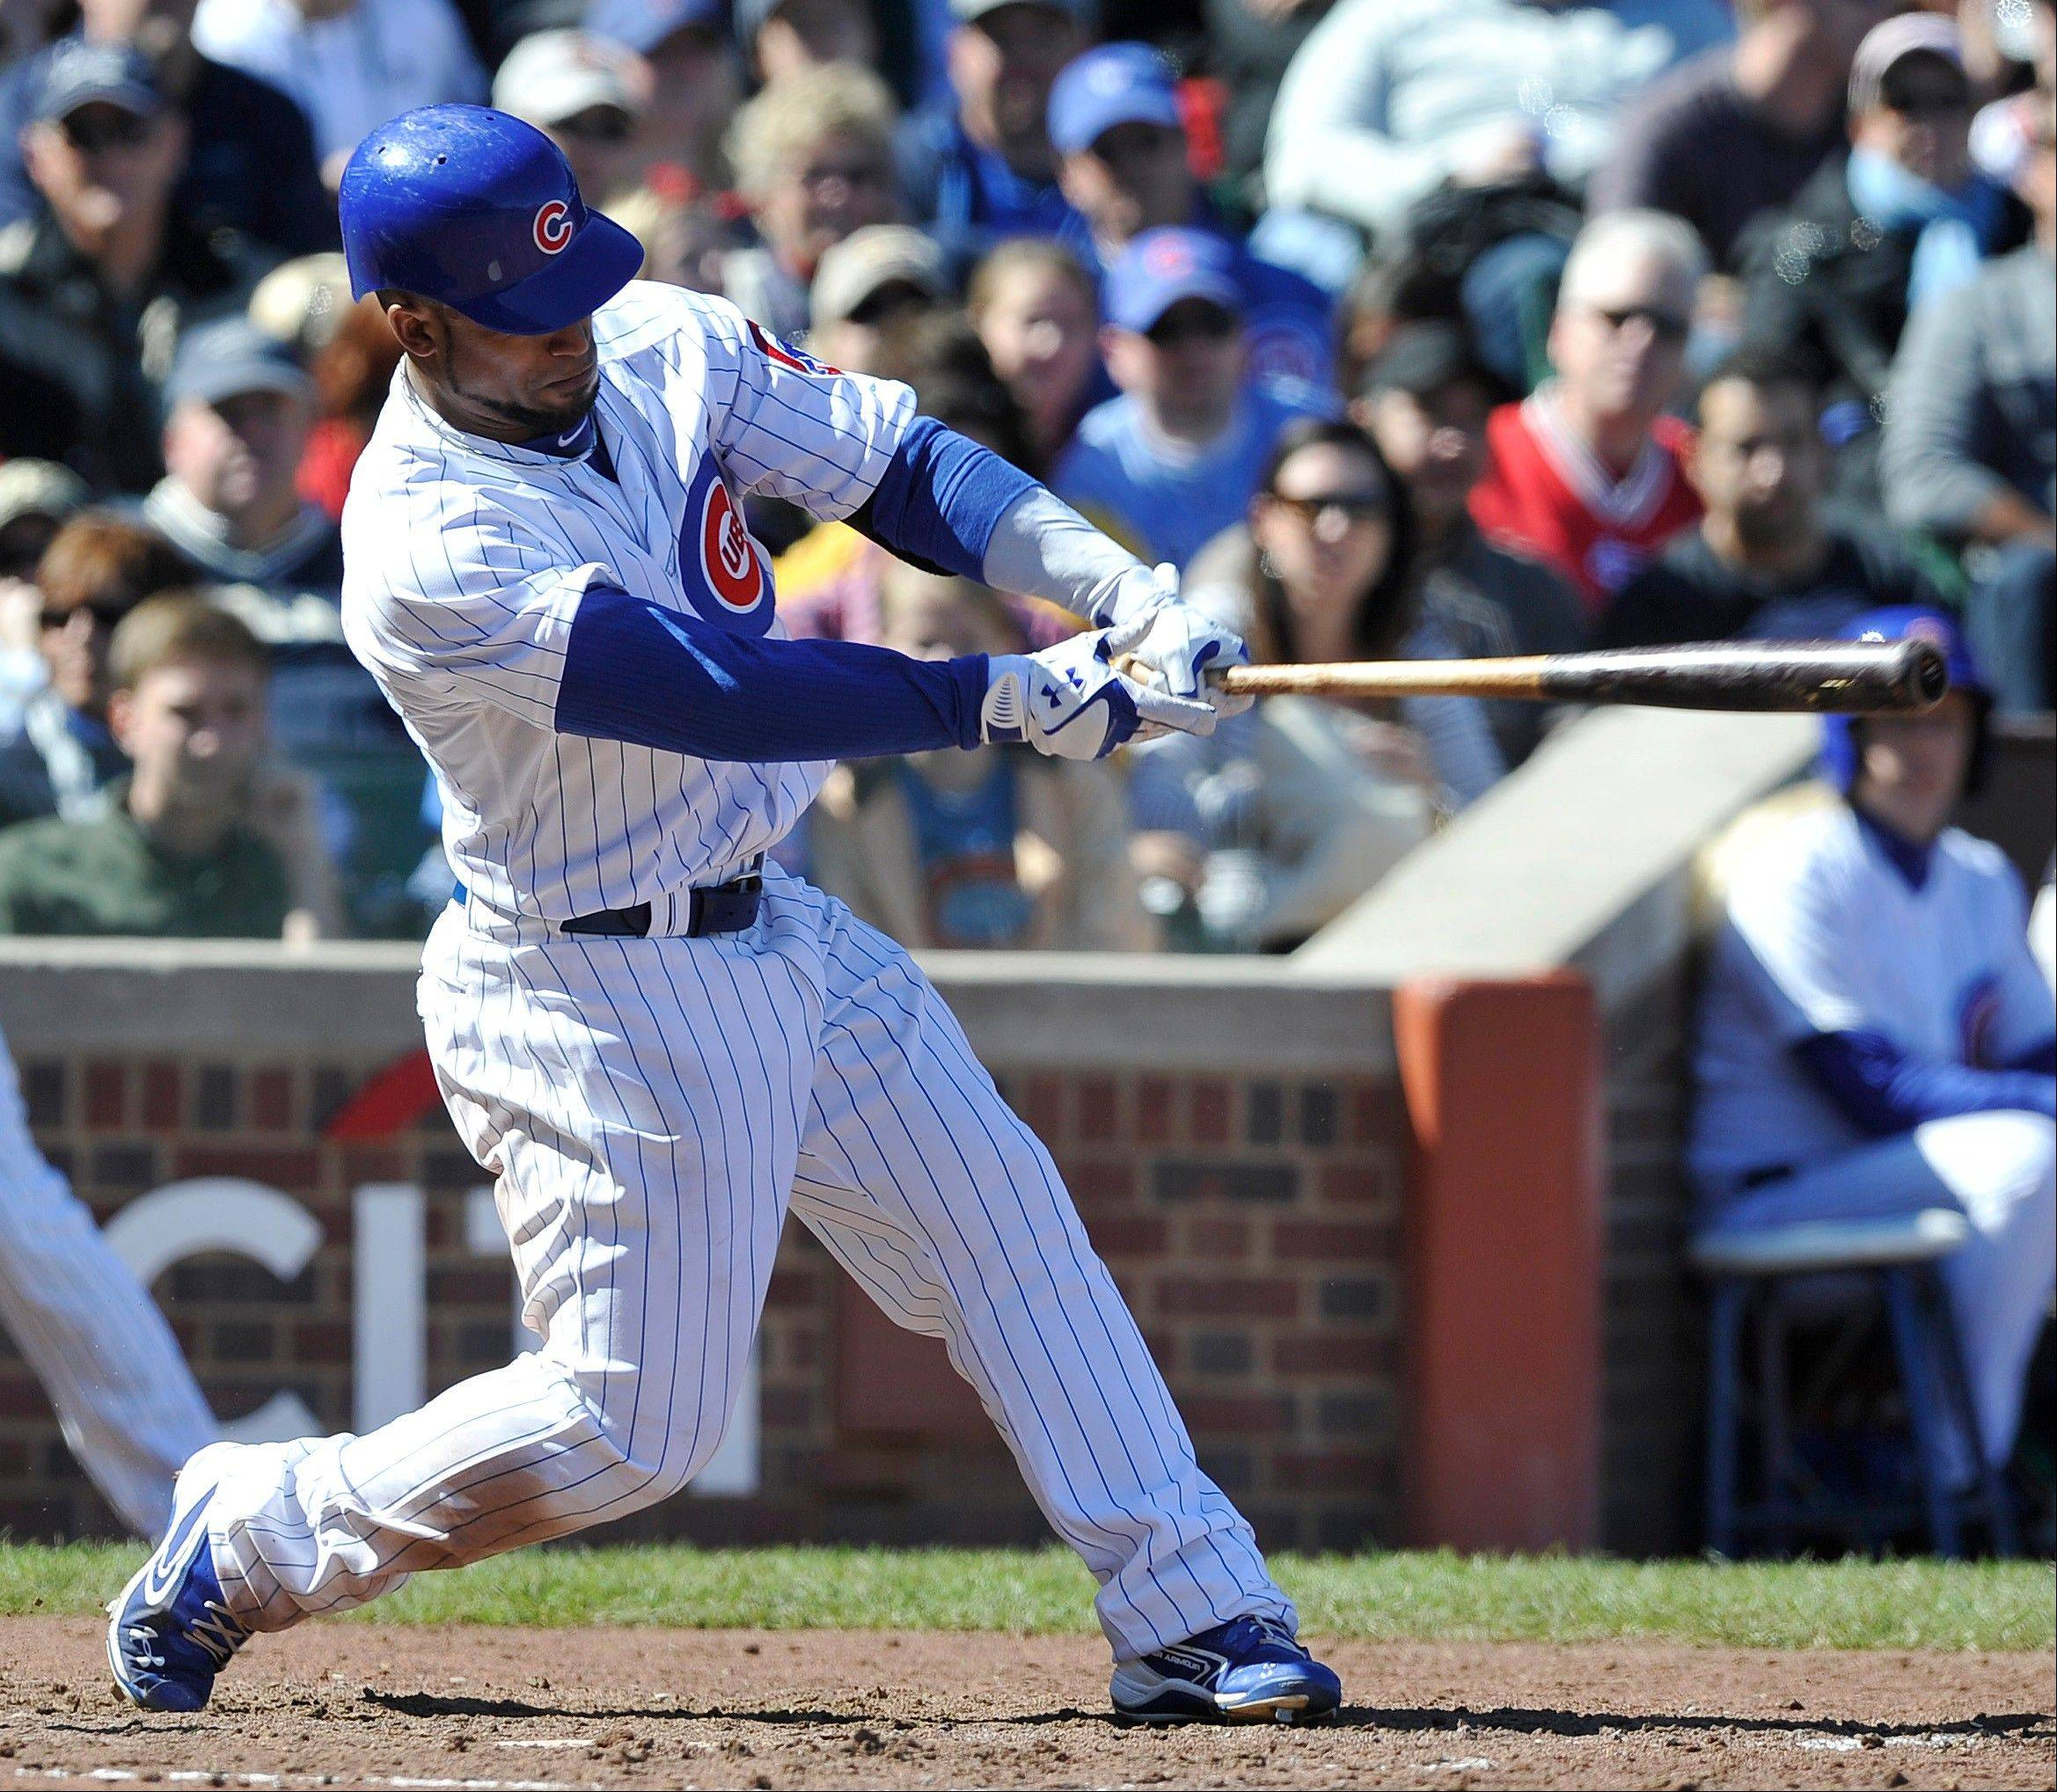 The Cubs' Dave Sappelt drives in run with a single against the St. Louis Cardinals Saturday during the sixth inning at Wrigley Field.